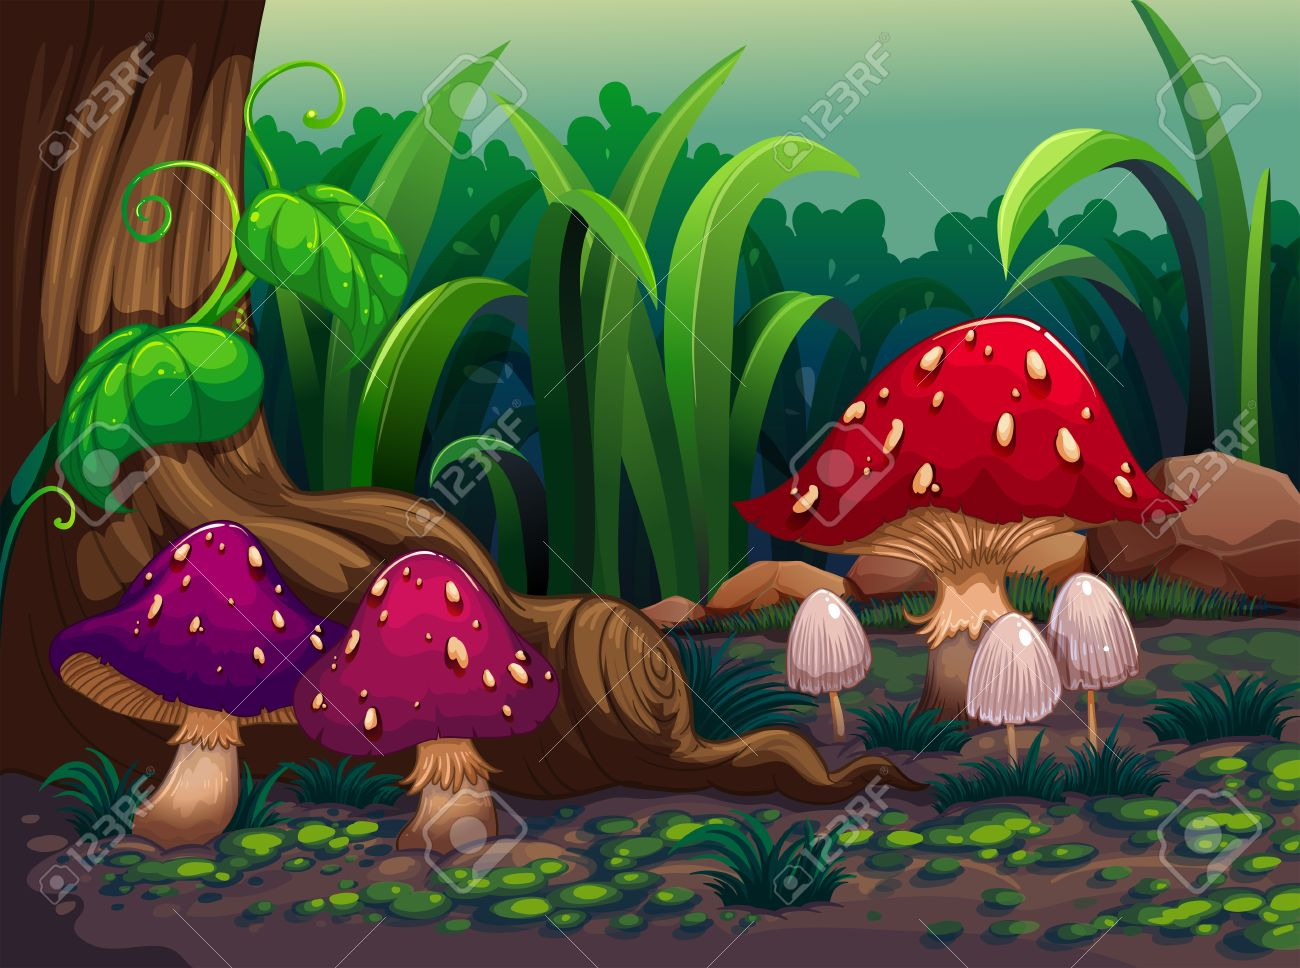 Mushroom forest clipart.